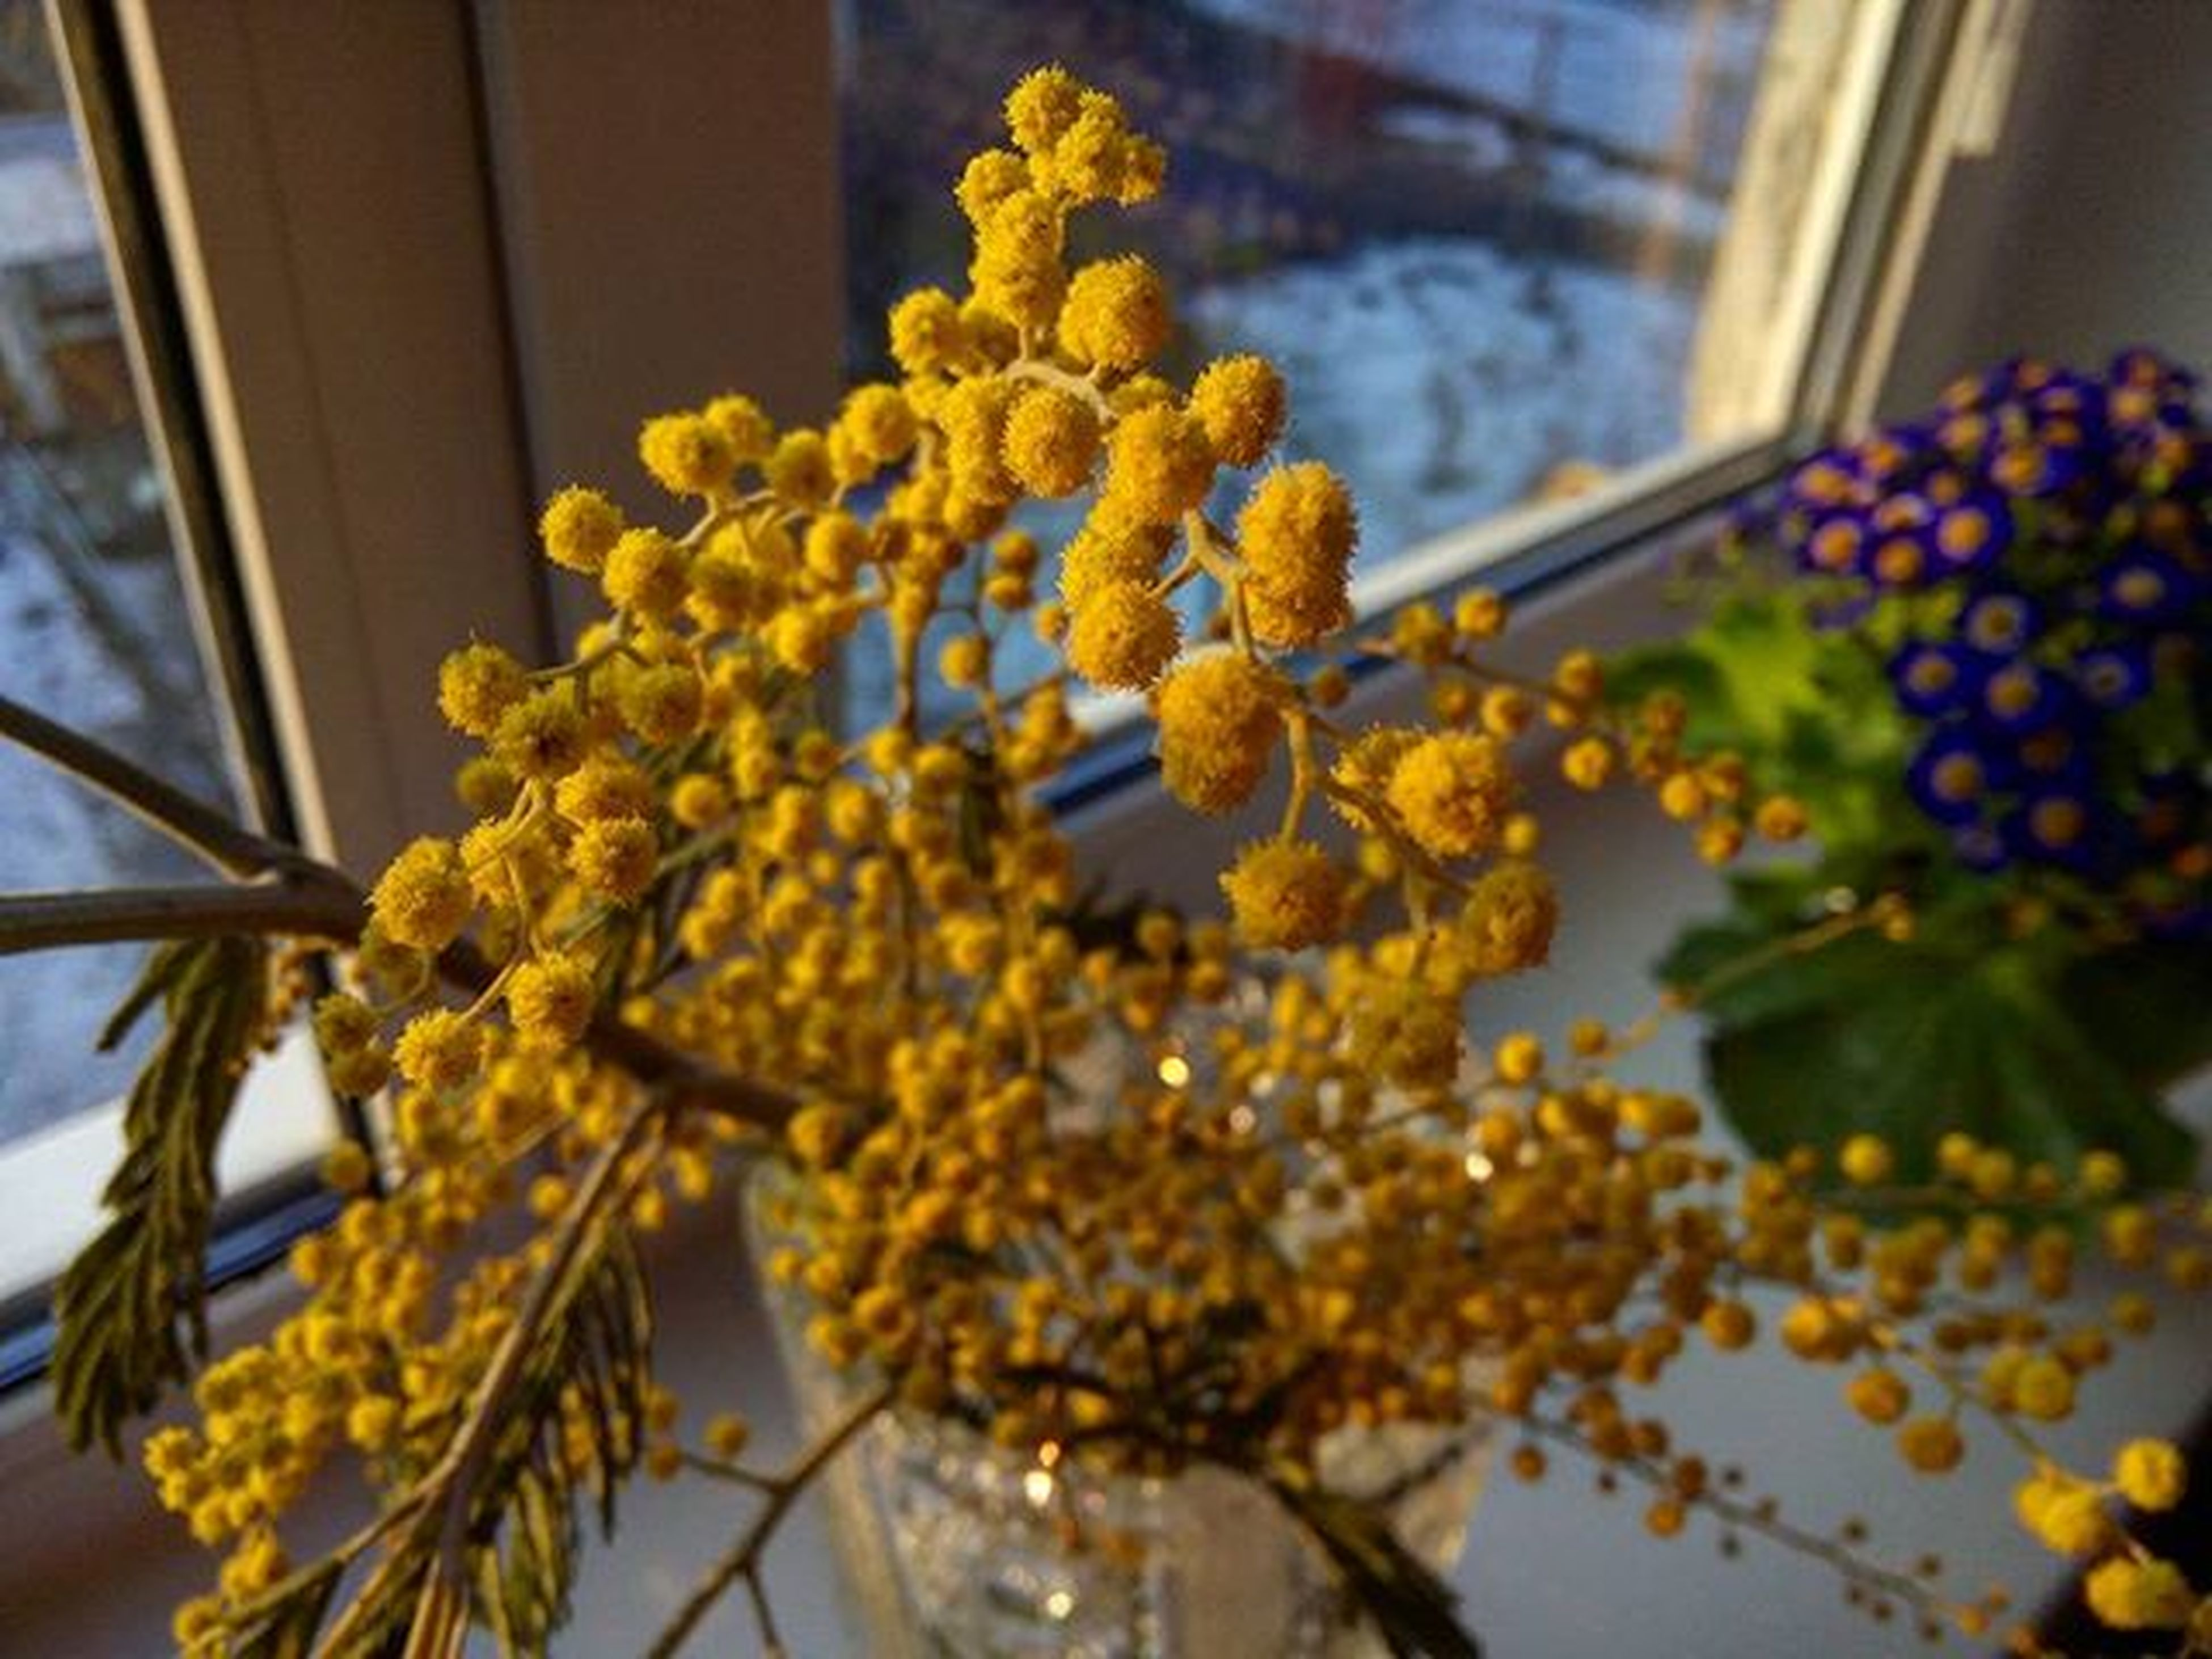 flower, freshness, indoors, yellow, fragility, close-up, growth, low angle view, focus on foreground, petal, nature, beauty in nature, window, plant, hanging, selective focus, no people, decoration, day, branch